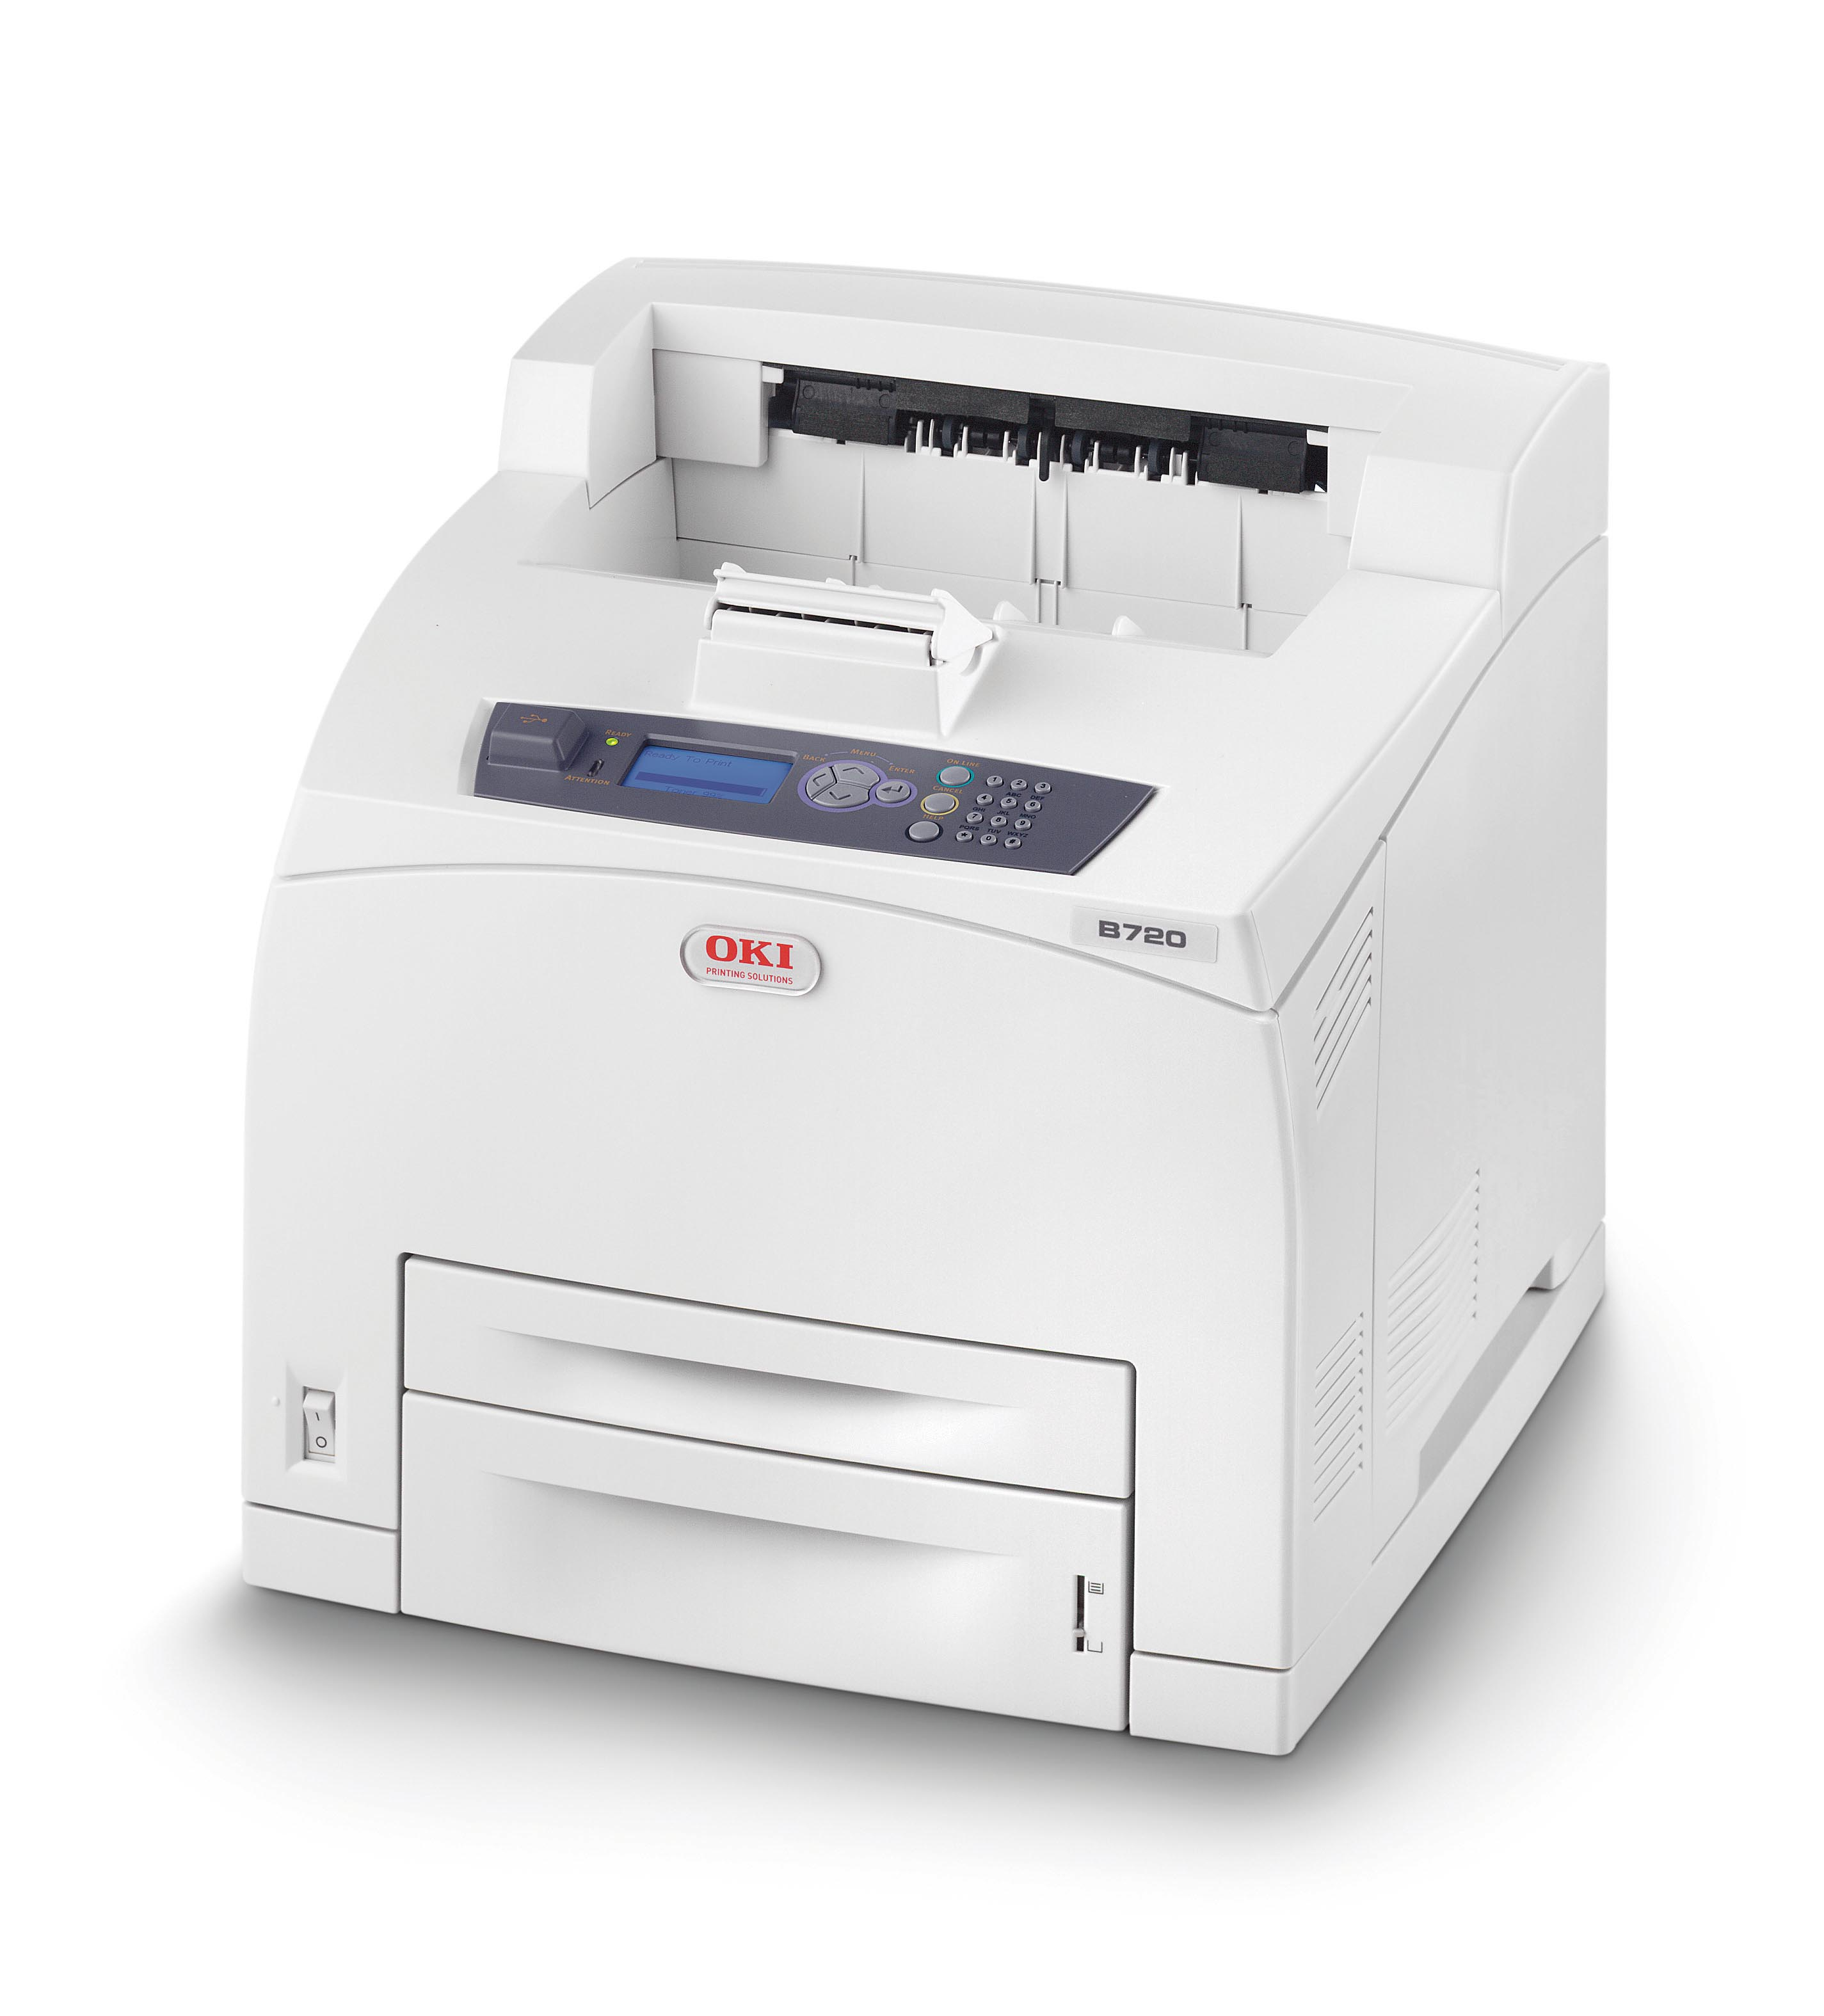 01278401 OKI B720N B720 A4 Mono LED Network Desktop Workgroup Laser Printer - Refurbished with 3 months RTB warranty